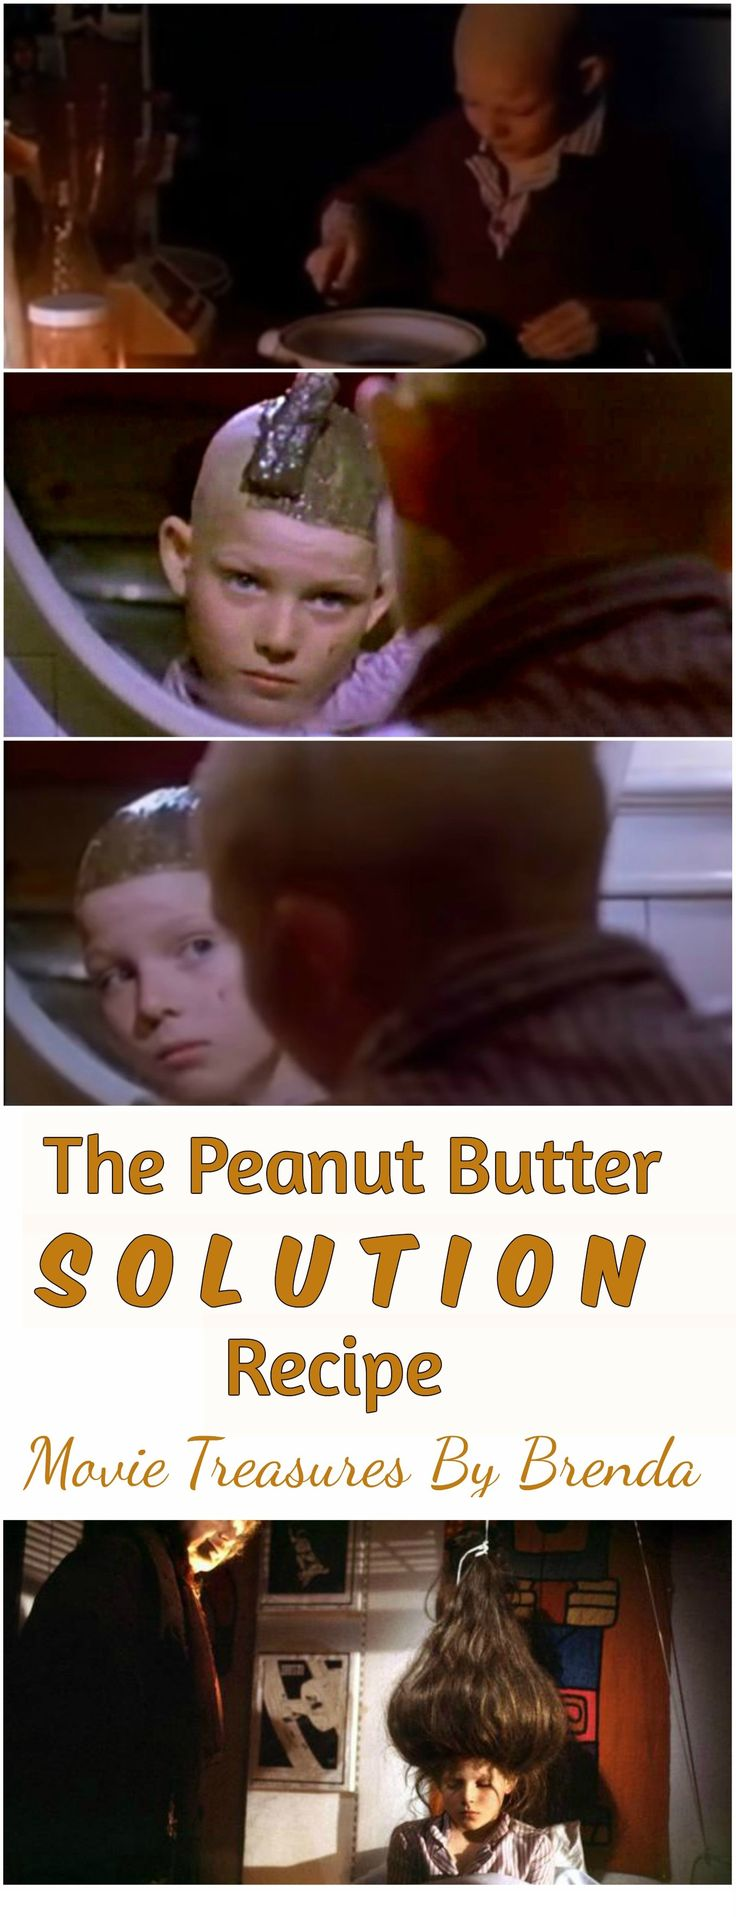 The Peanut Butter Solution movie recipe for baldness.